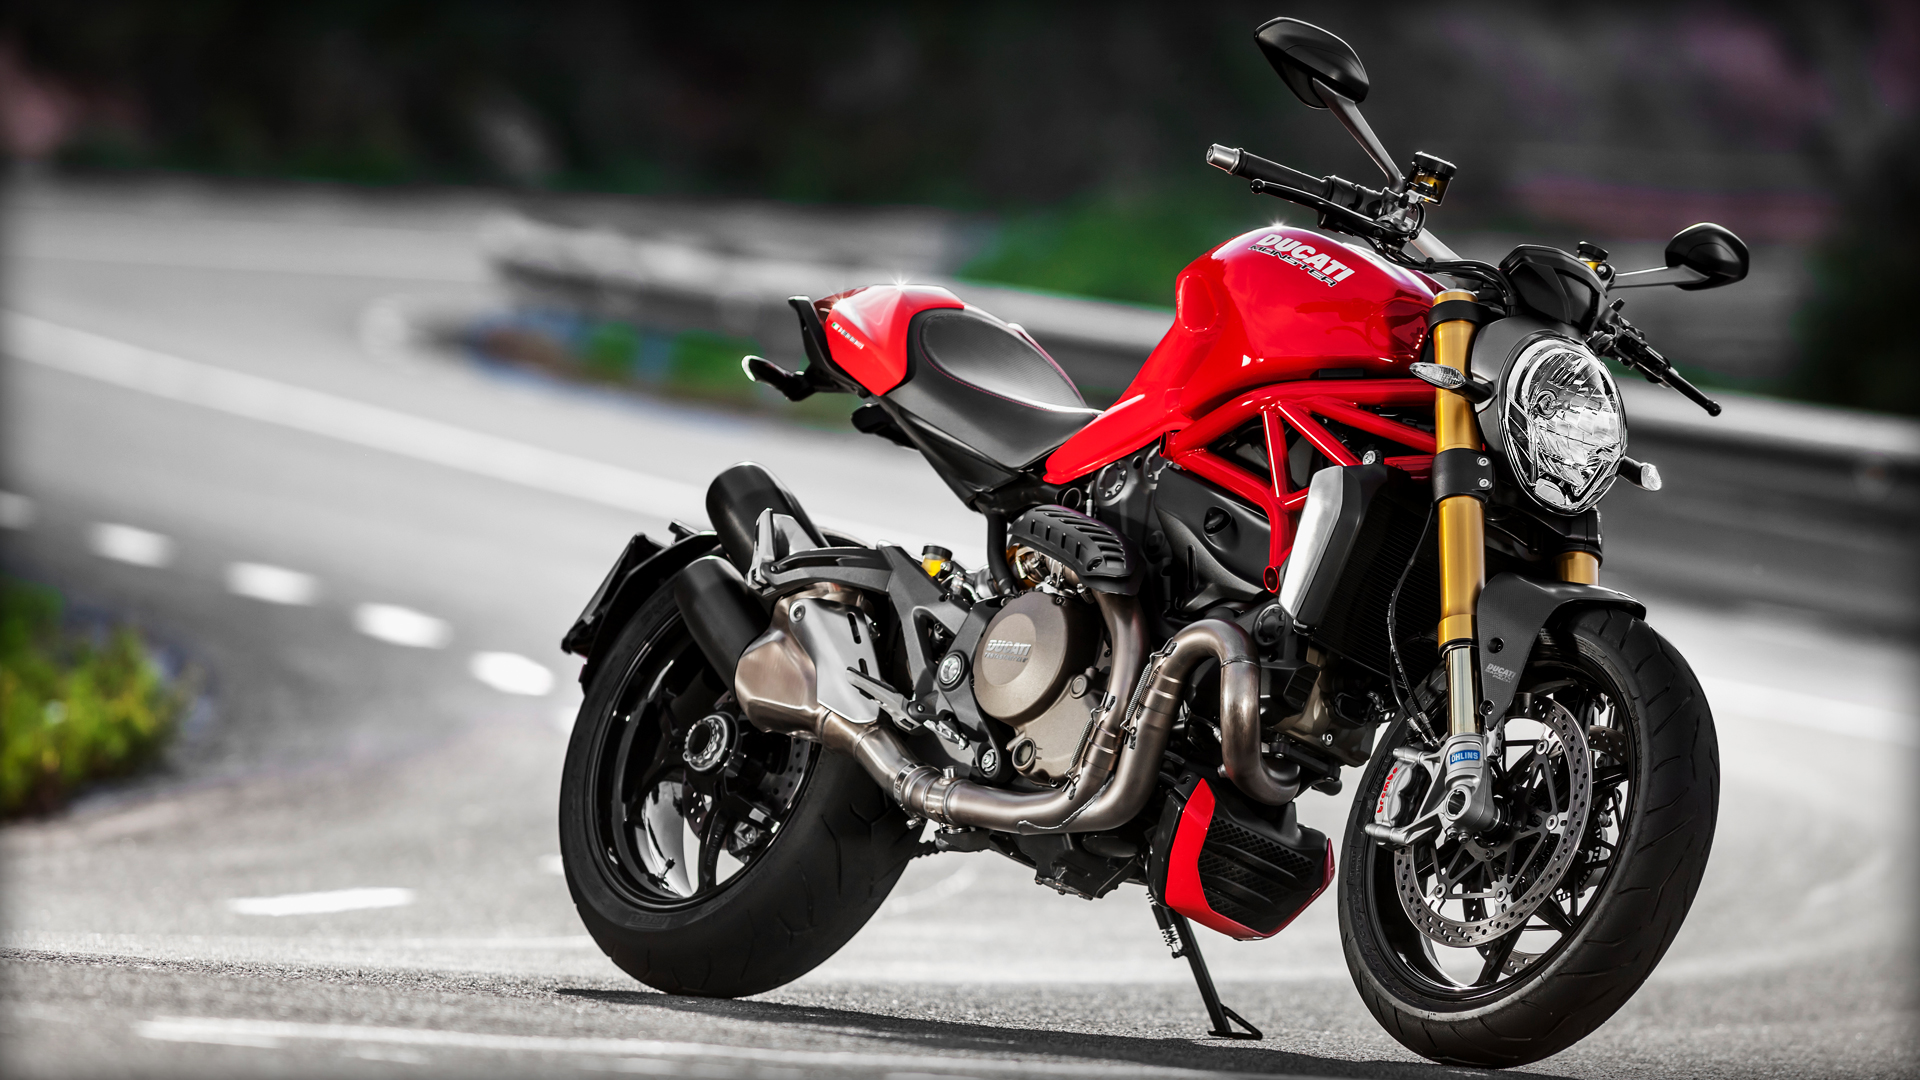 Ducati Motobike Wallpapers For Pc